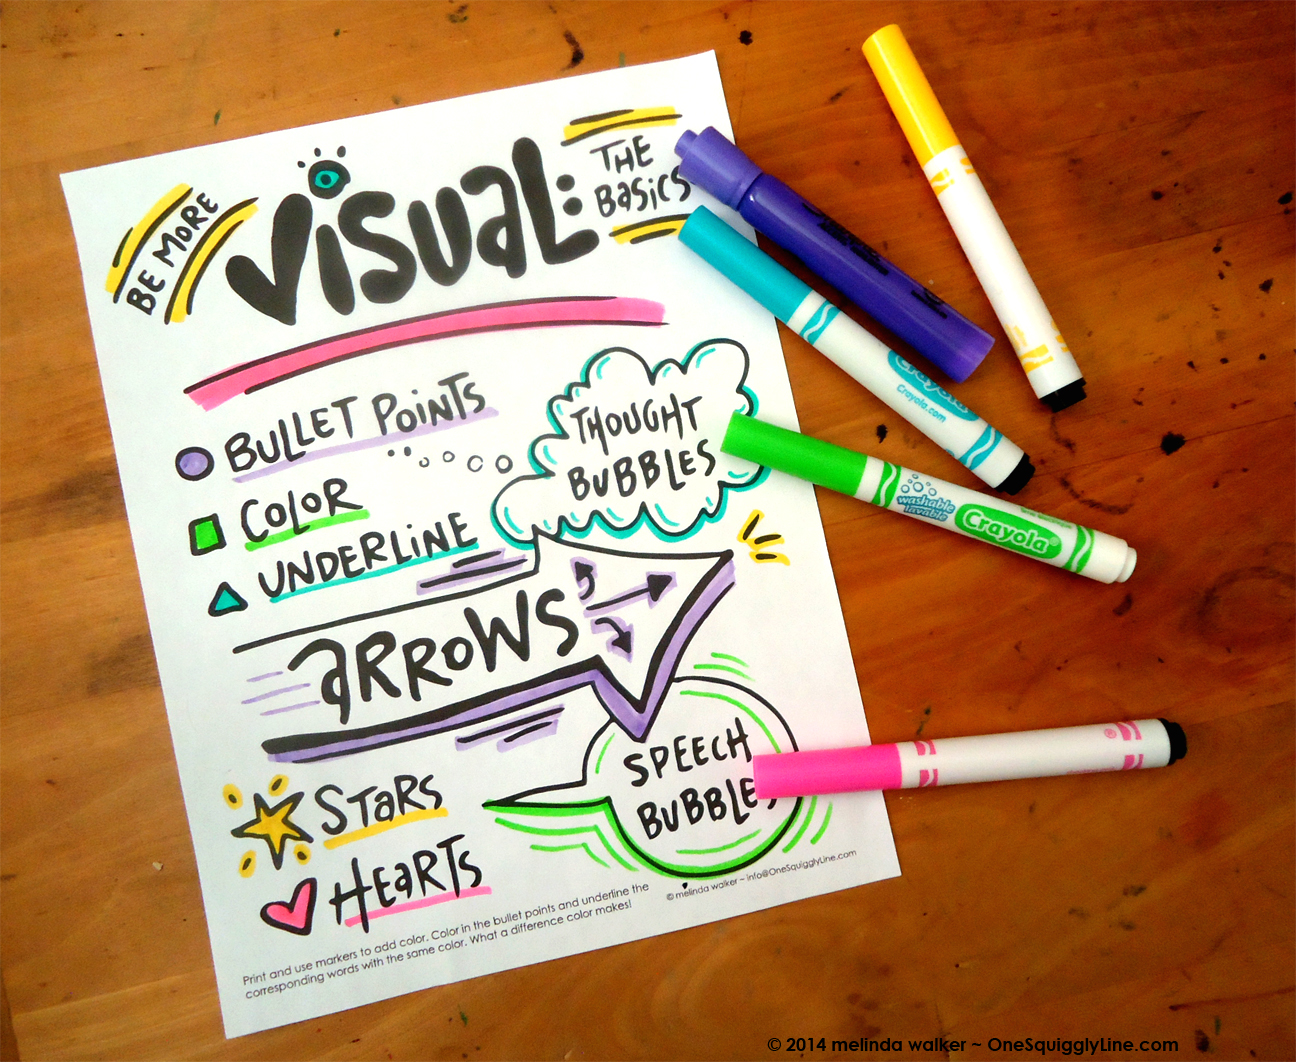 Be More Visual - Free Downloads!